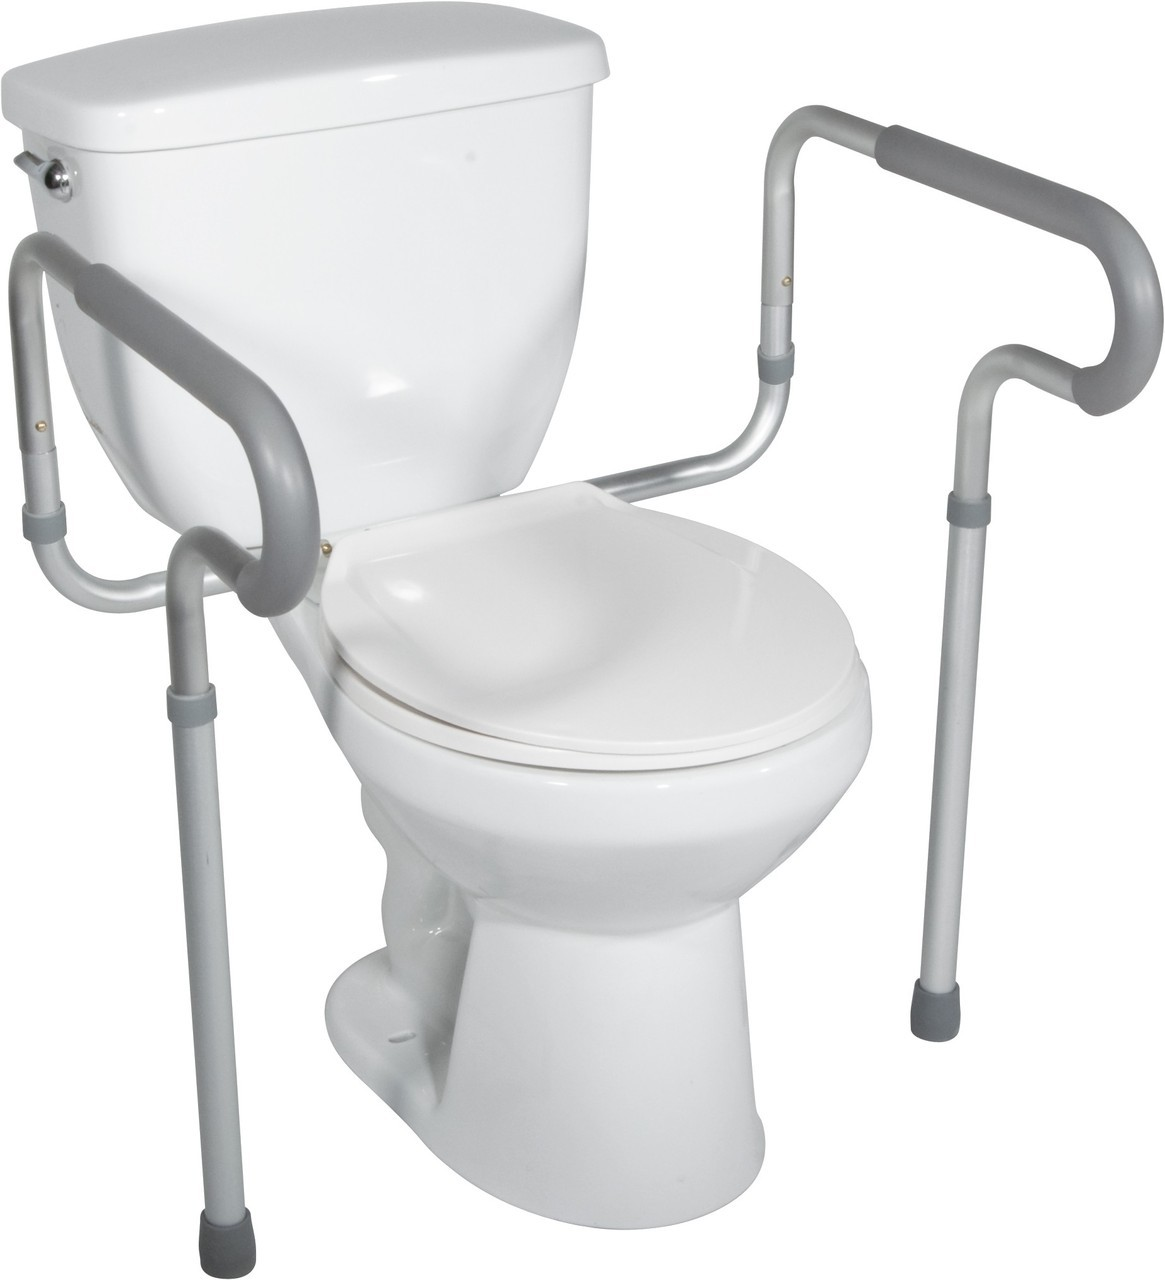 Wc Verhoger Bathroom And Toilet Safety Toilet Seat Risers And Safety